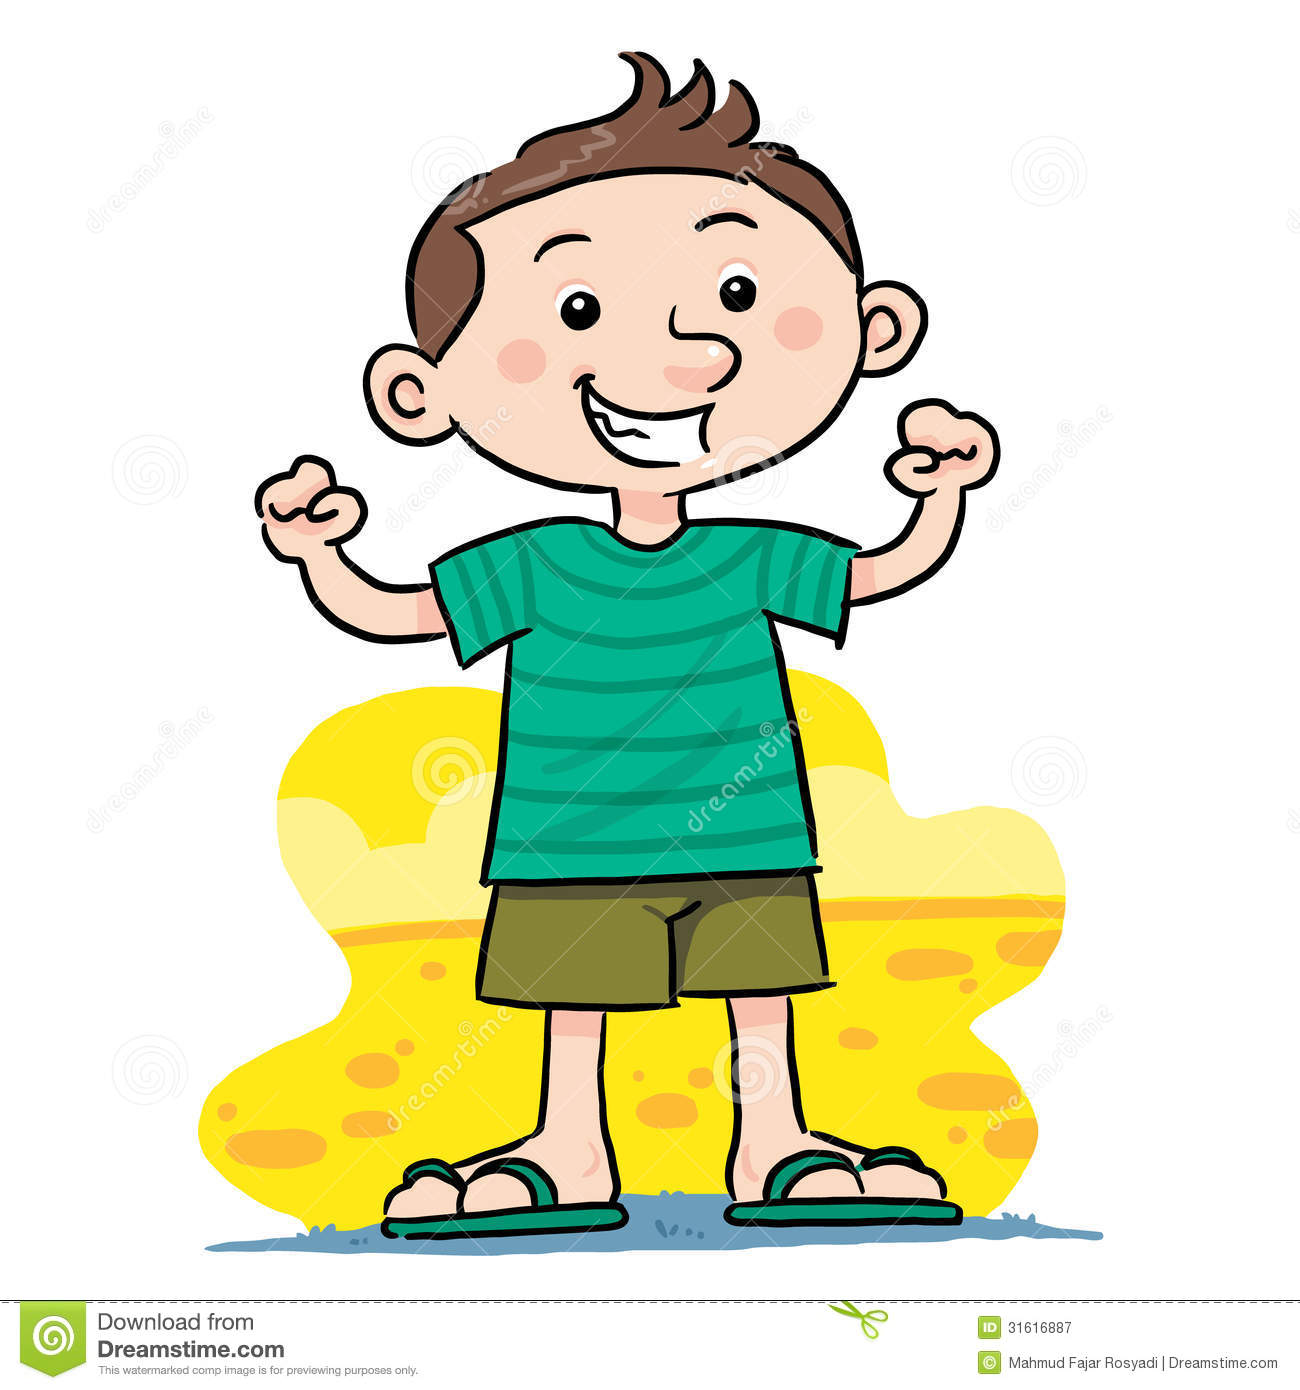 Healthy child clipart 5 » Clipart Station.